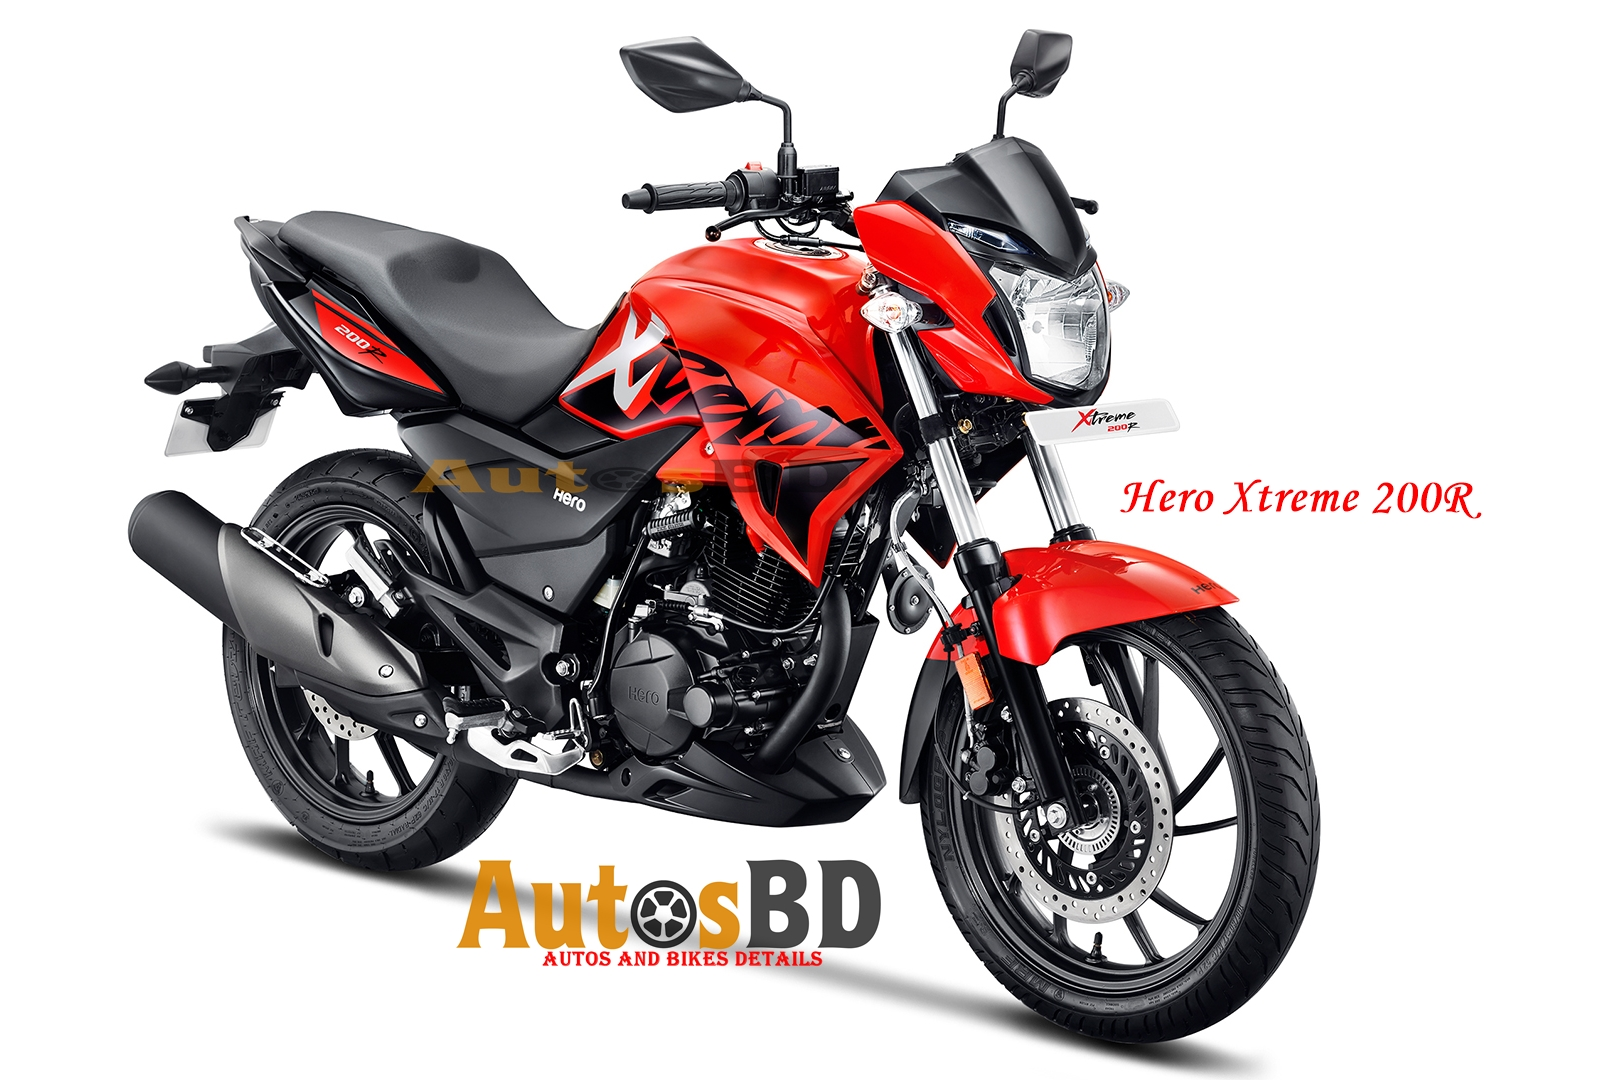 Hero Xtreme 200R Price in India